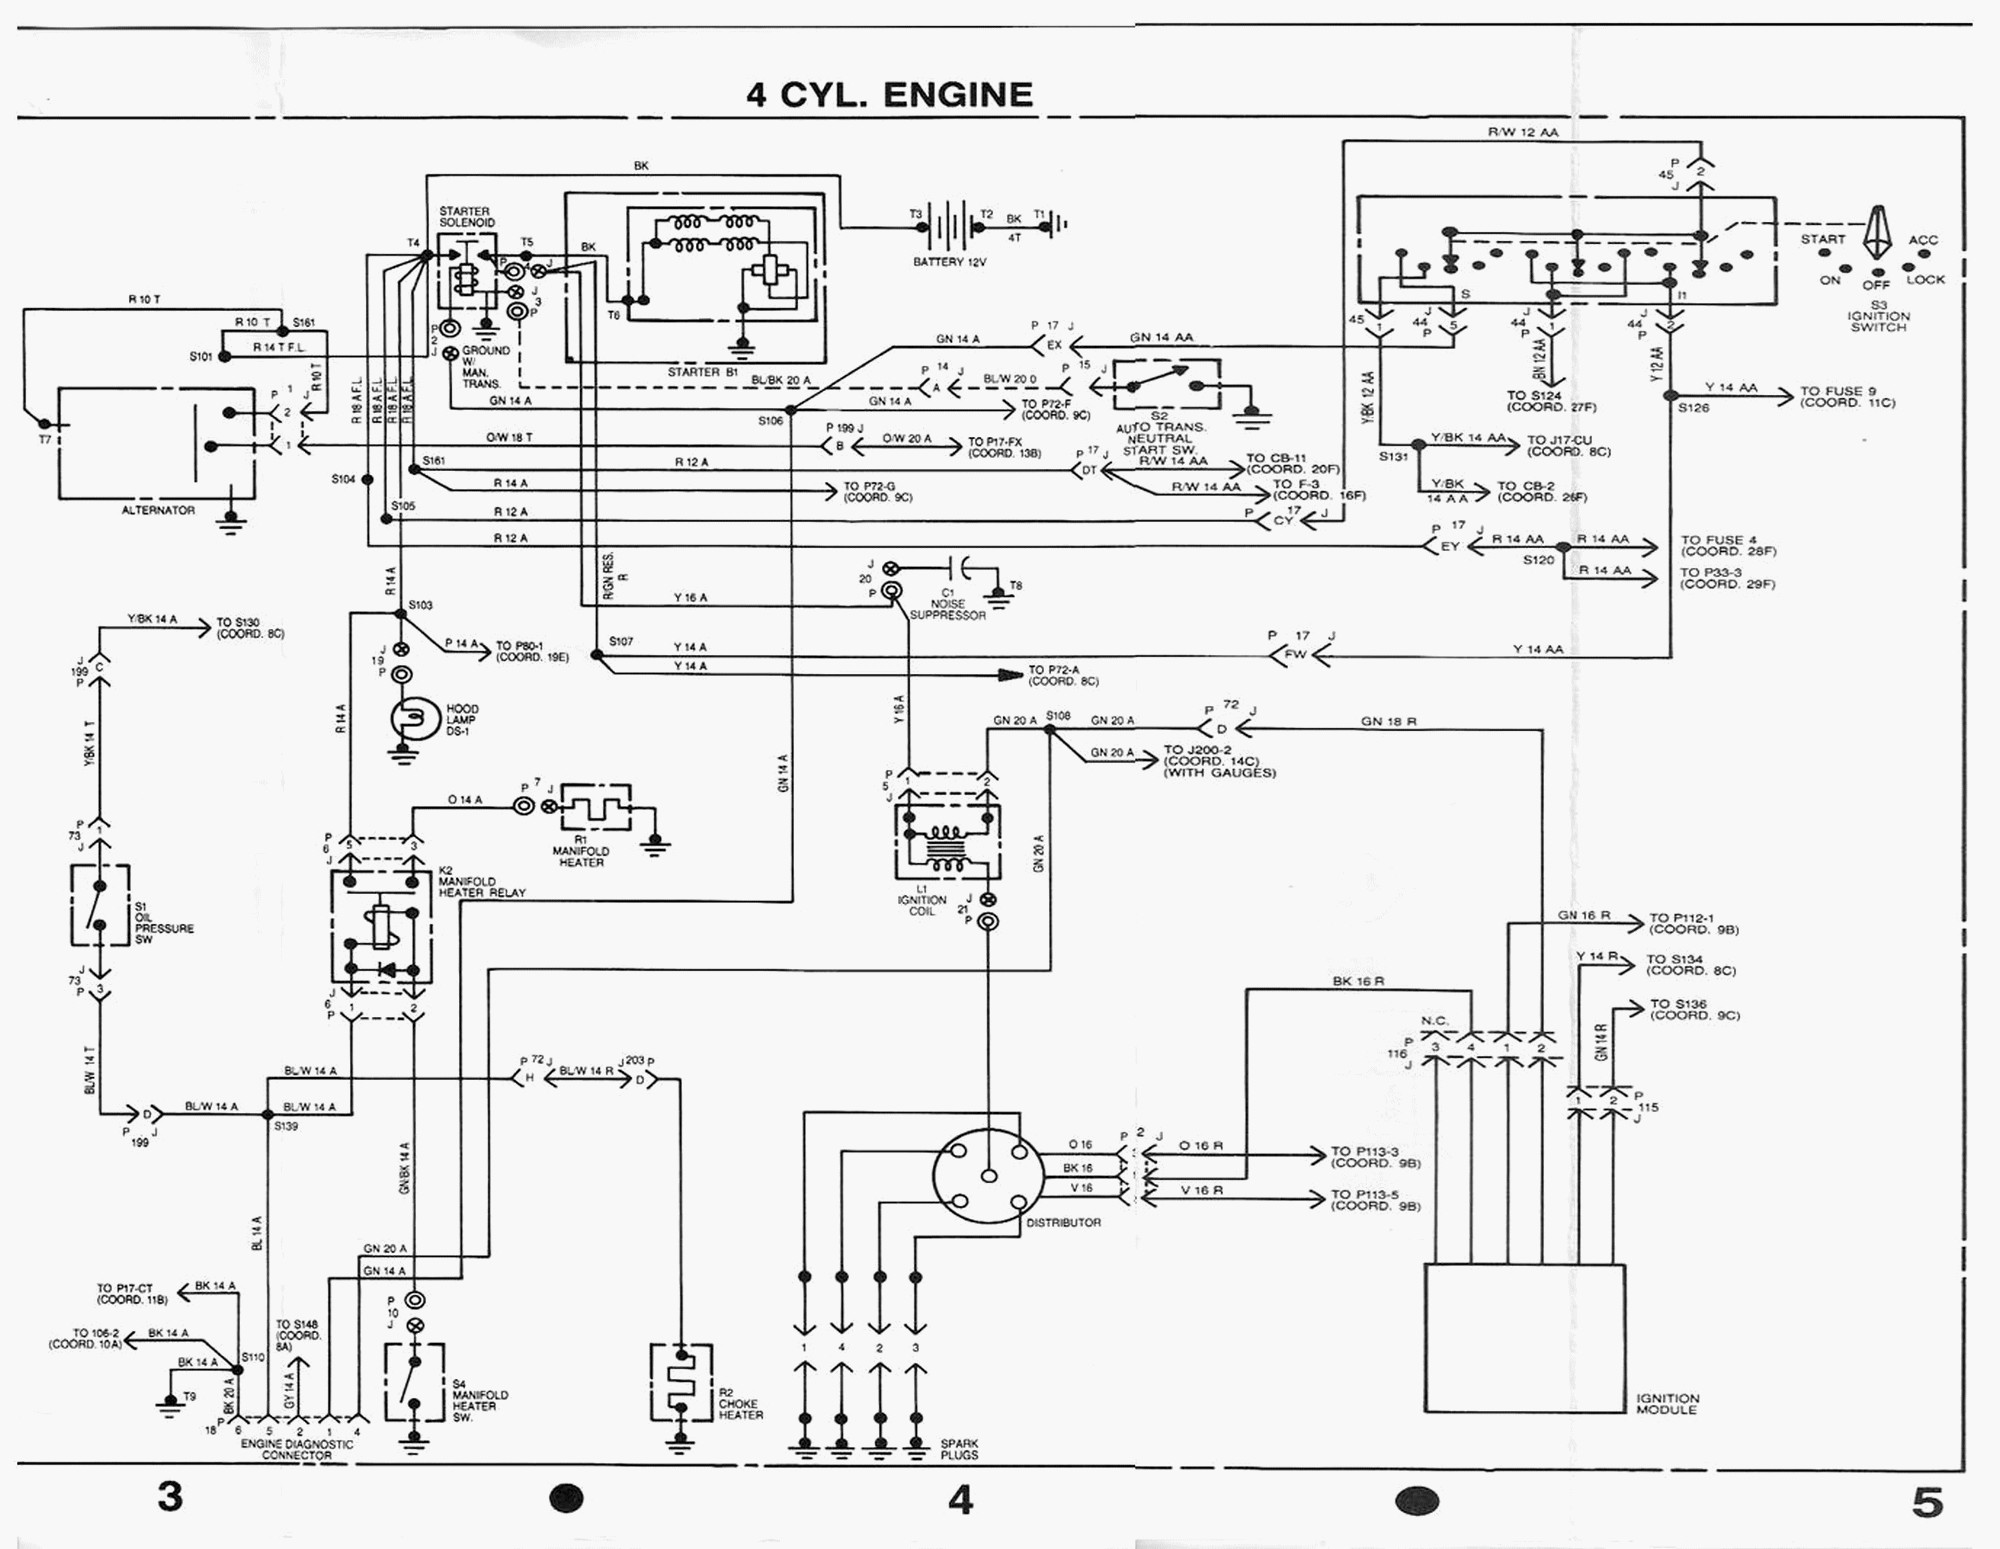 Jeep Comanche Wiring Diagram 28 Images 89 Fuse Box I 4 Engine Amc Evolution Eagle Forums U2022 View Topic Downloads Available 1989